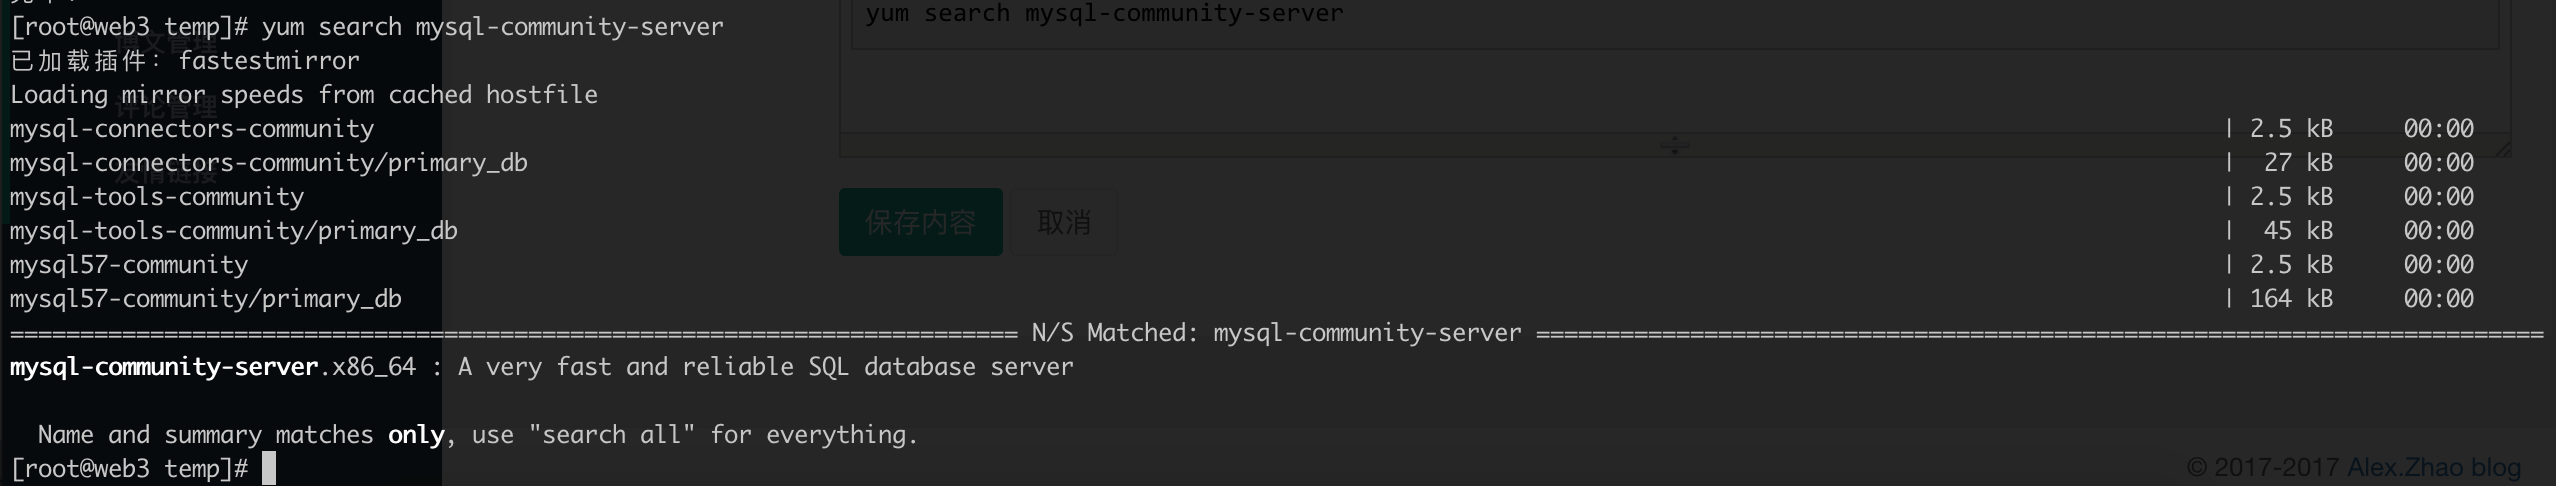 mysql-community-server